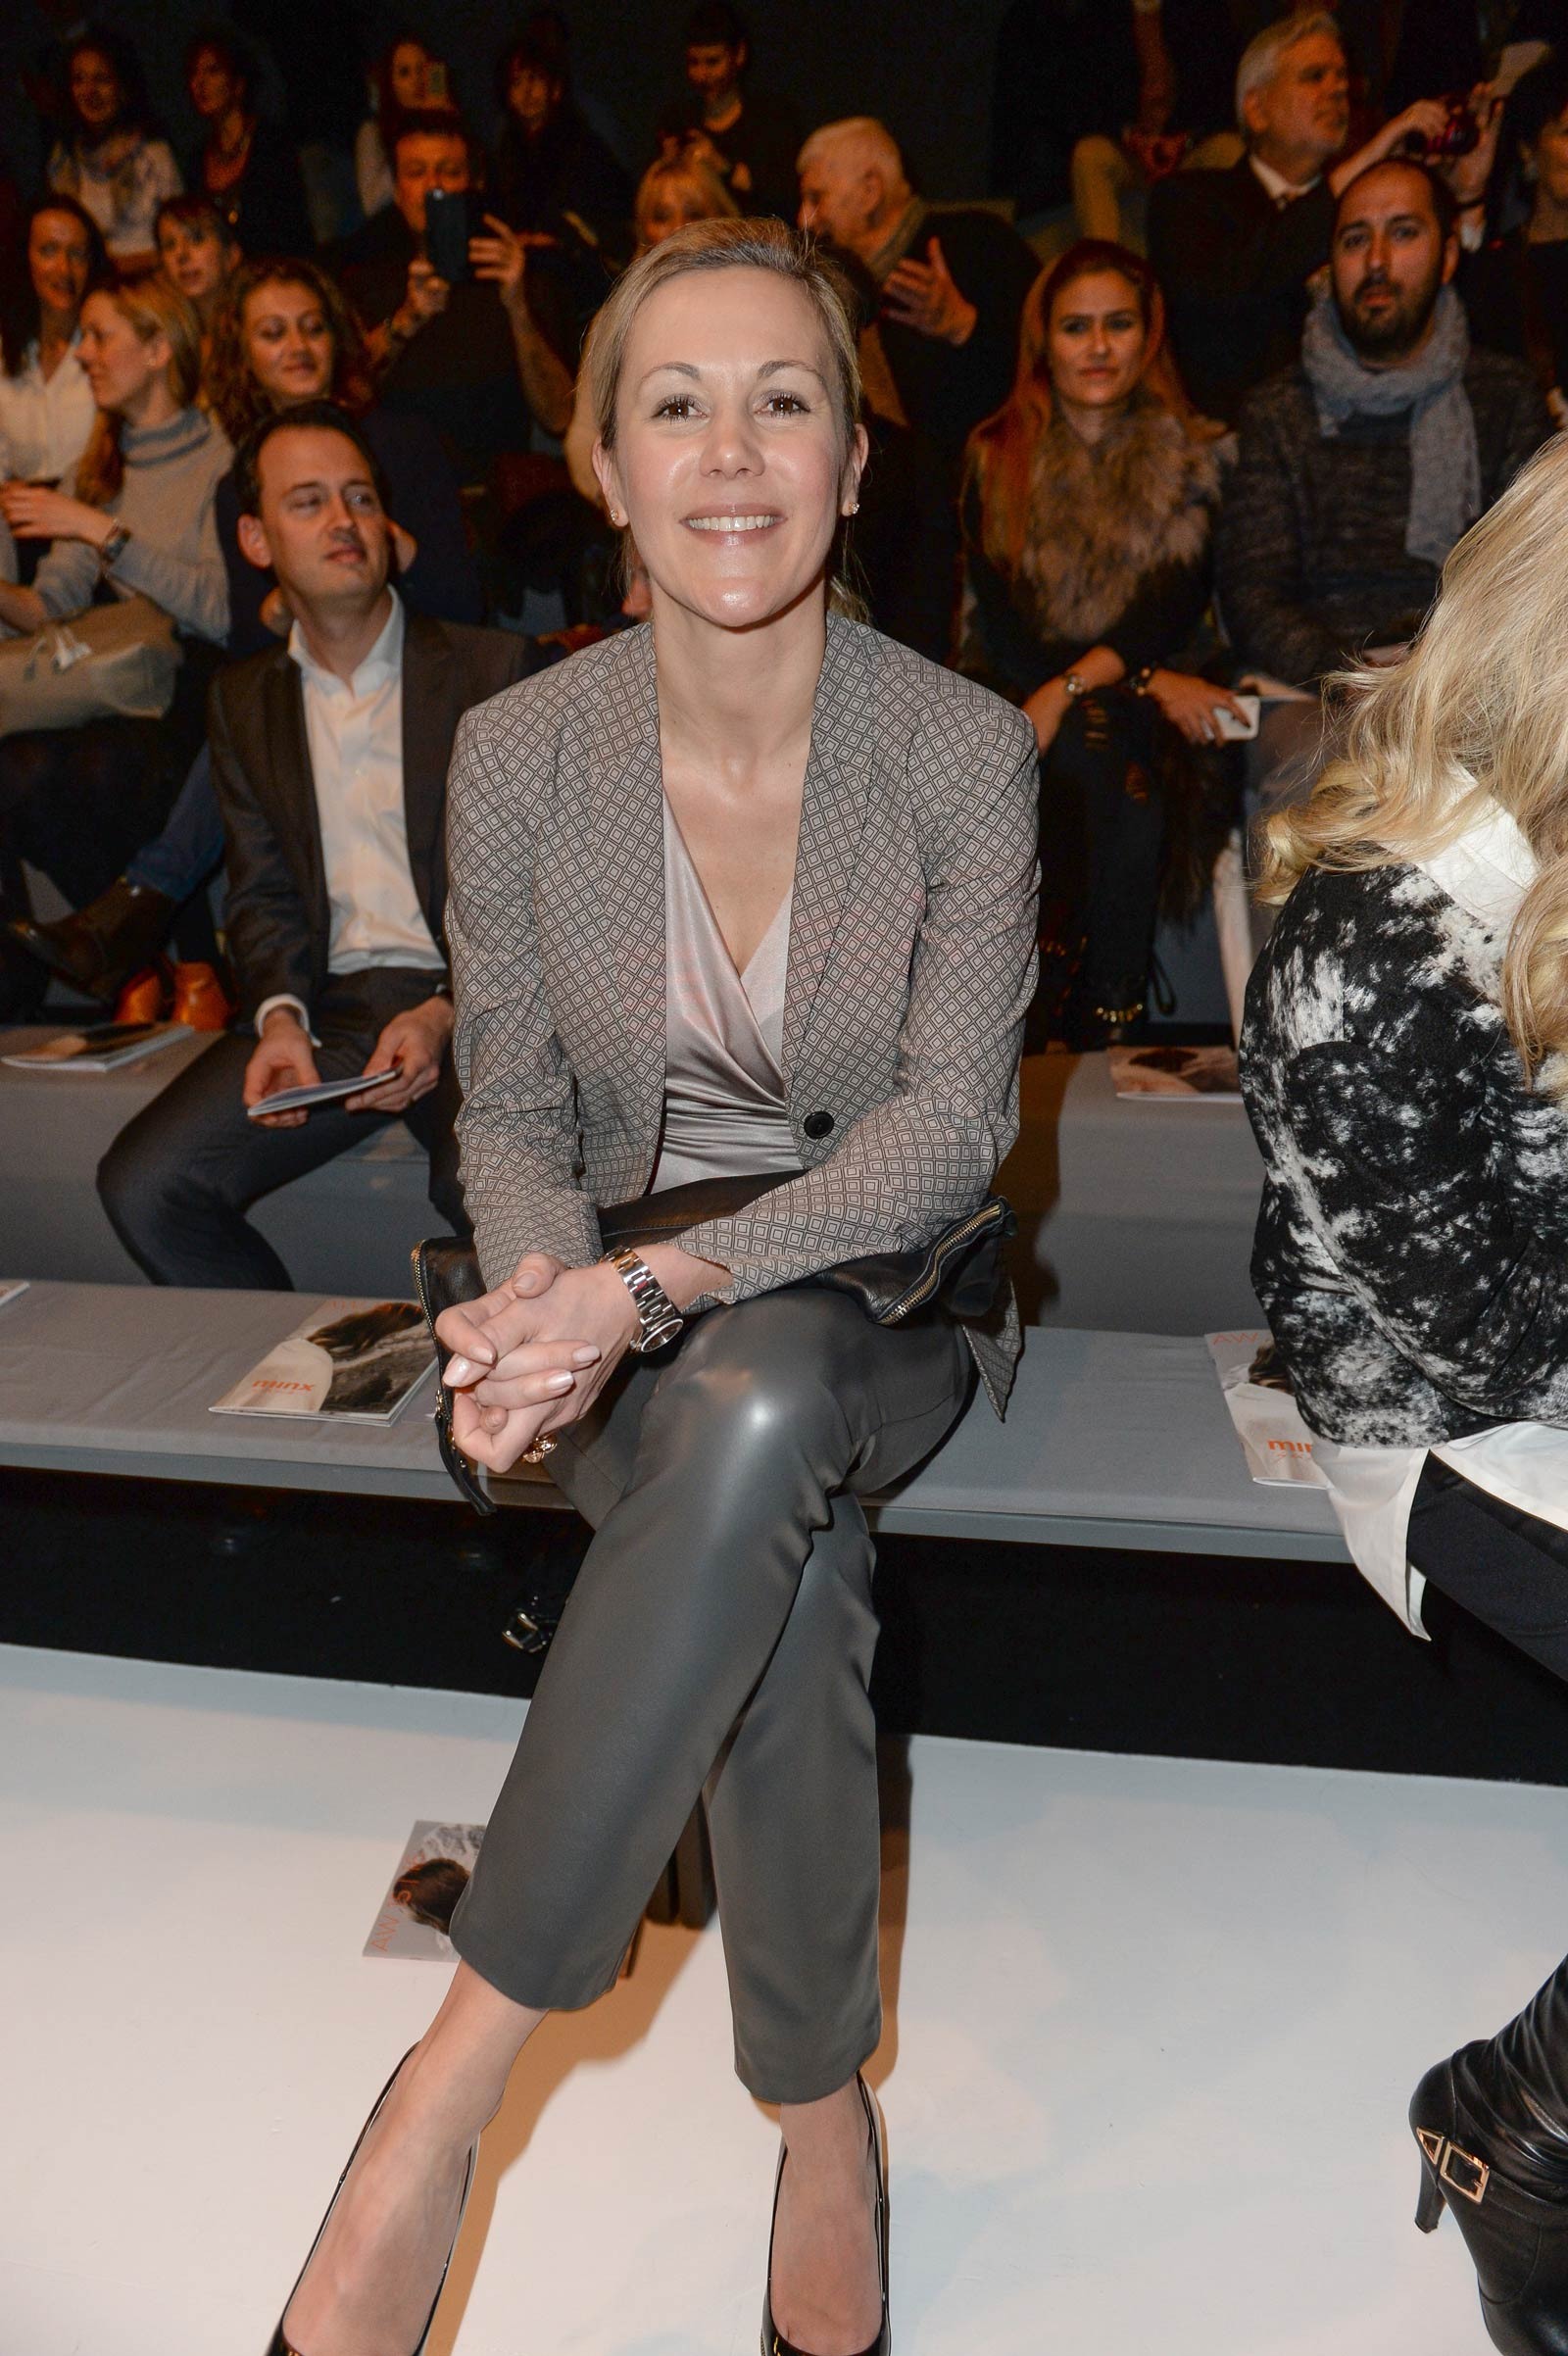 Bettina Wulff attends Merceses Benz Fashion Week